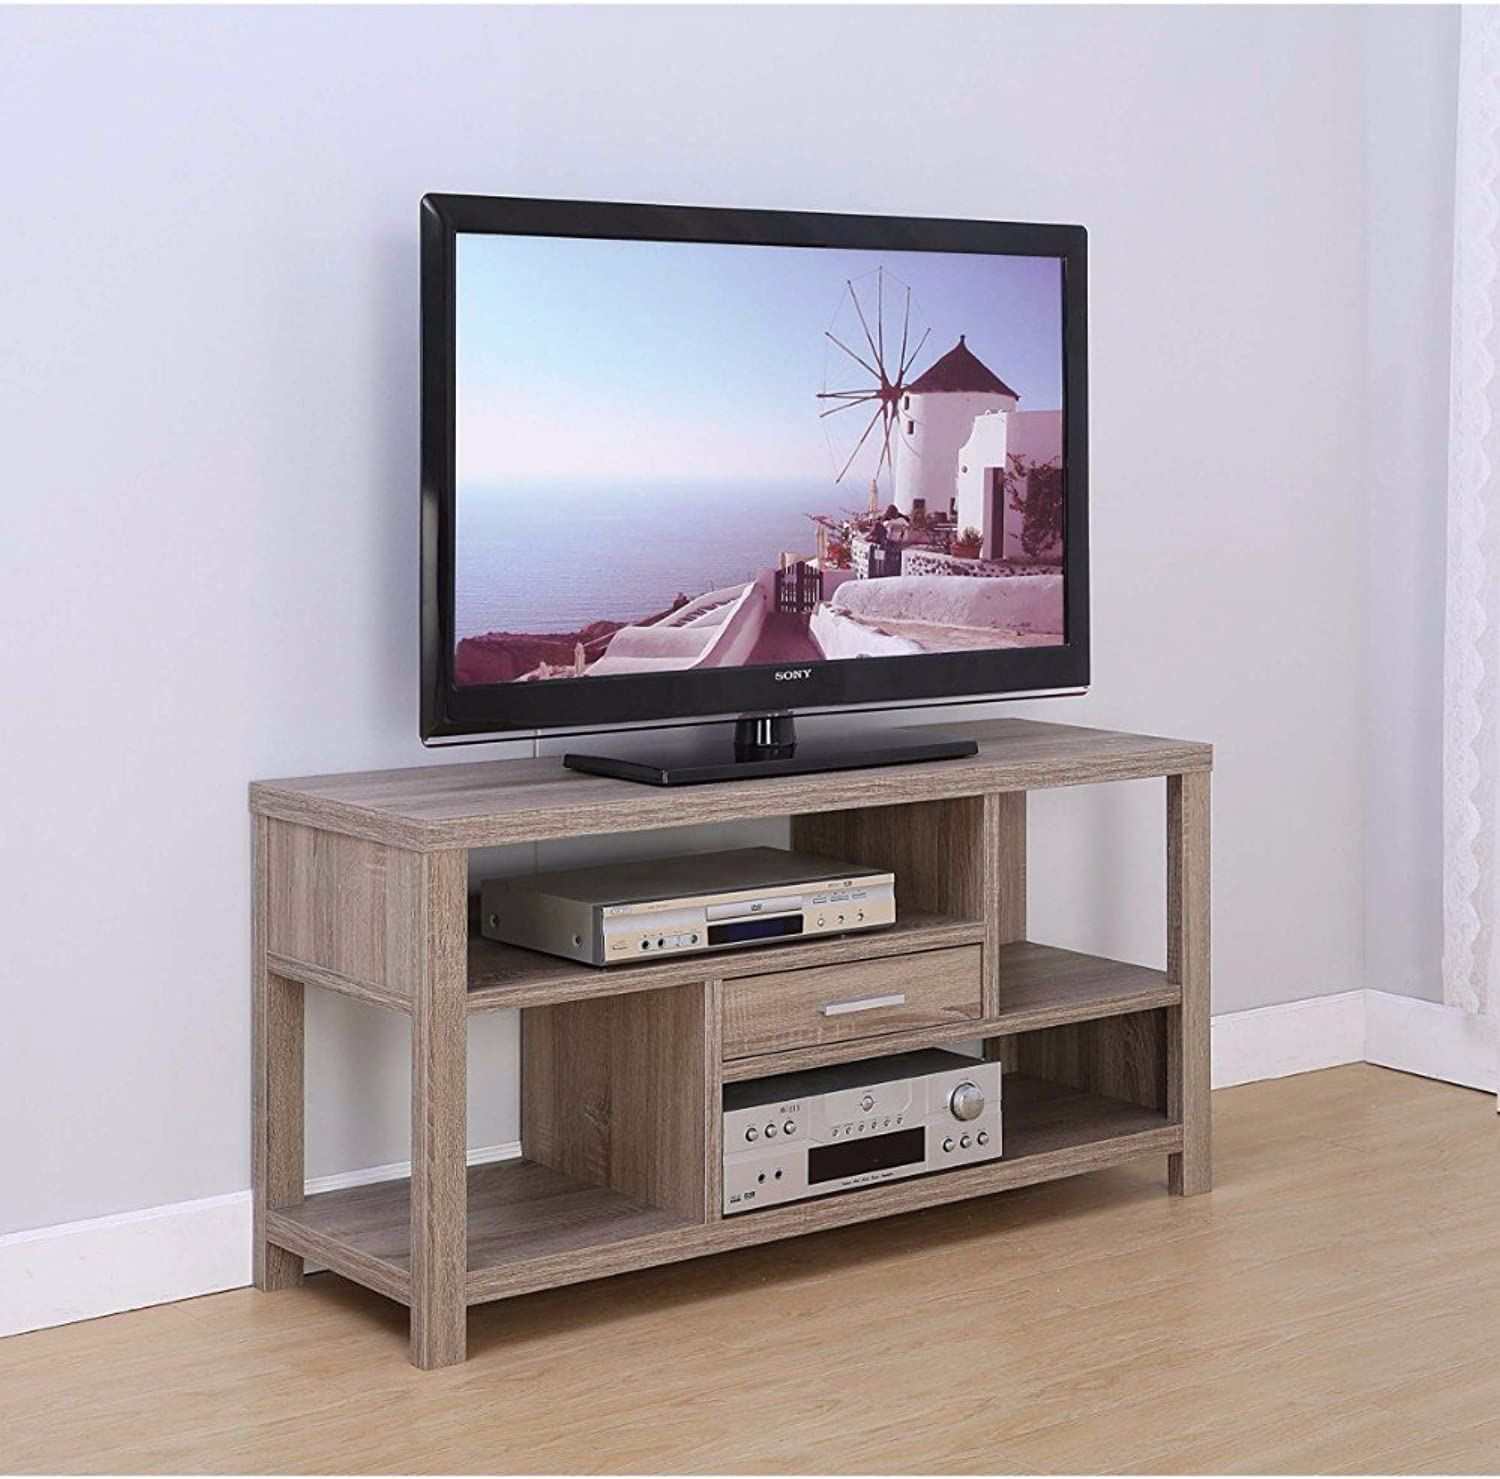 Benzara Imposing Spacious Drawer, Brown TV Stand